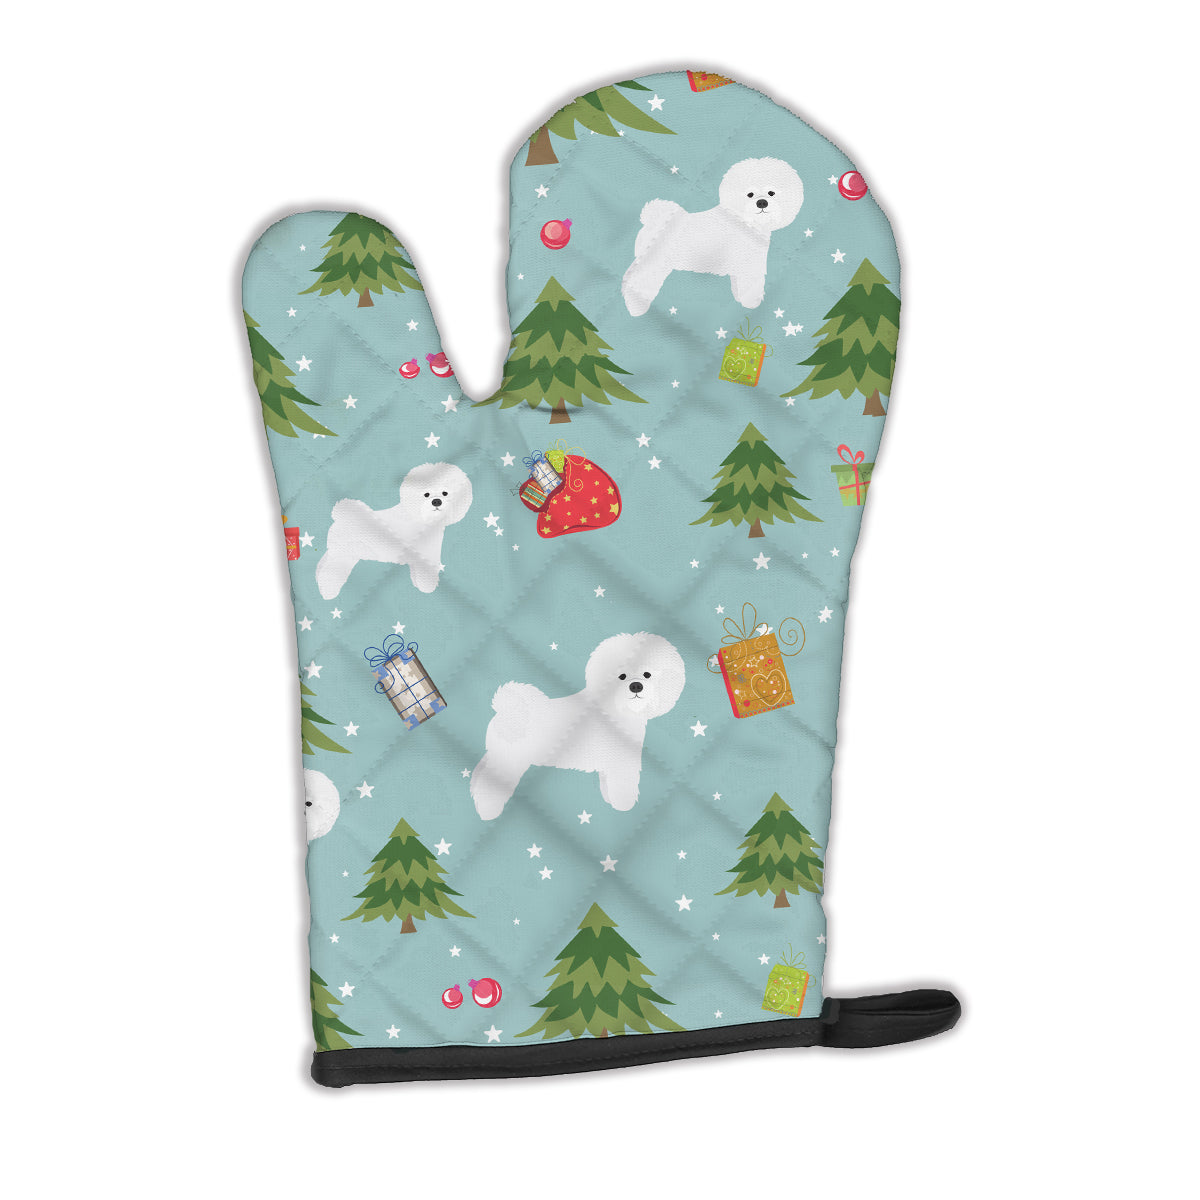 Christmas Bichon Frise Oven Mitt BB4911OVMT by Caroline's Treasures